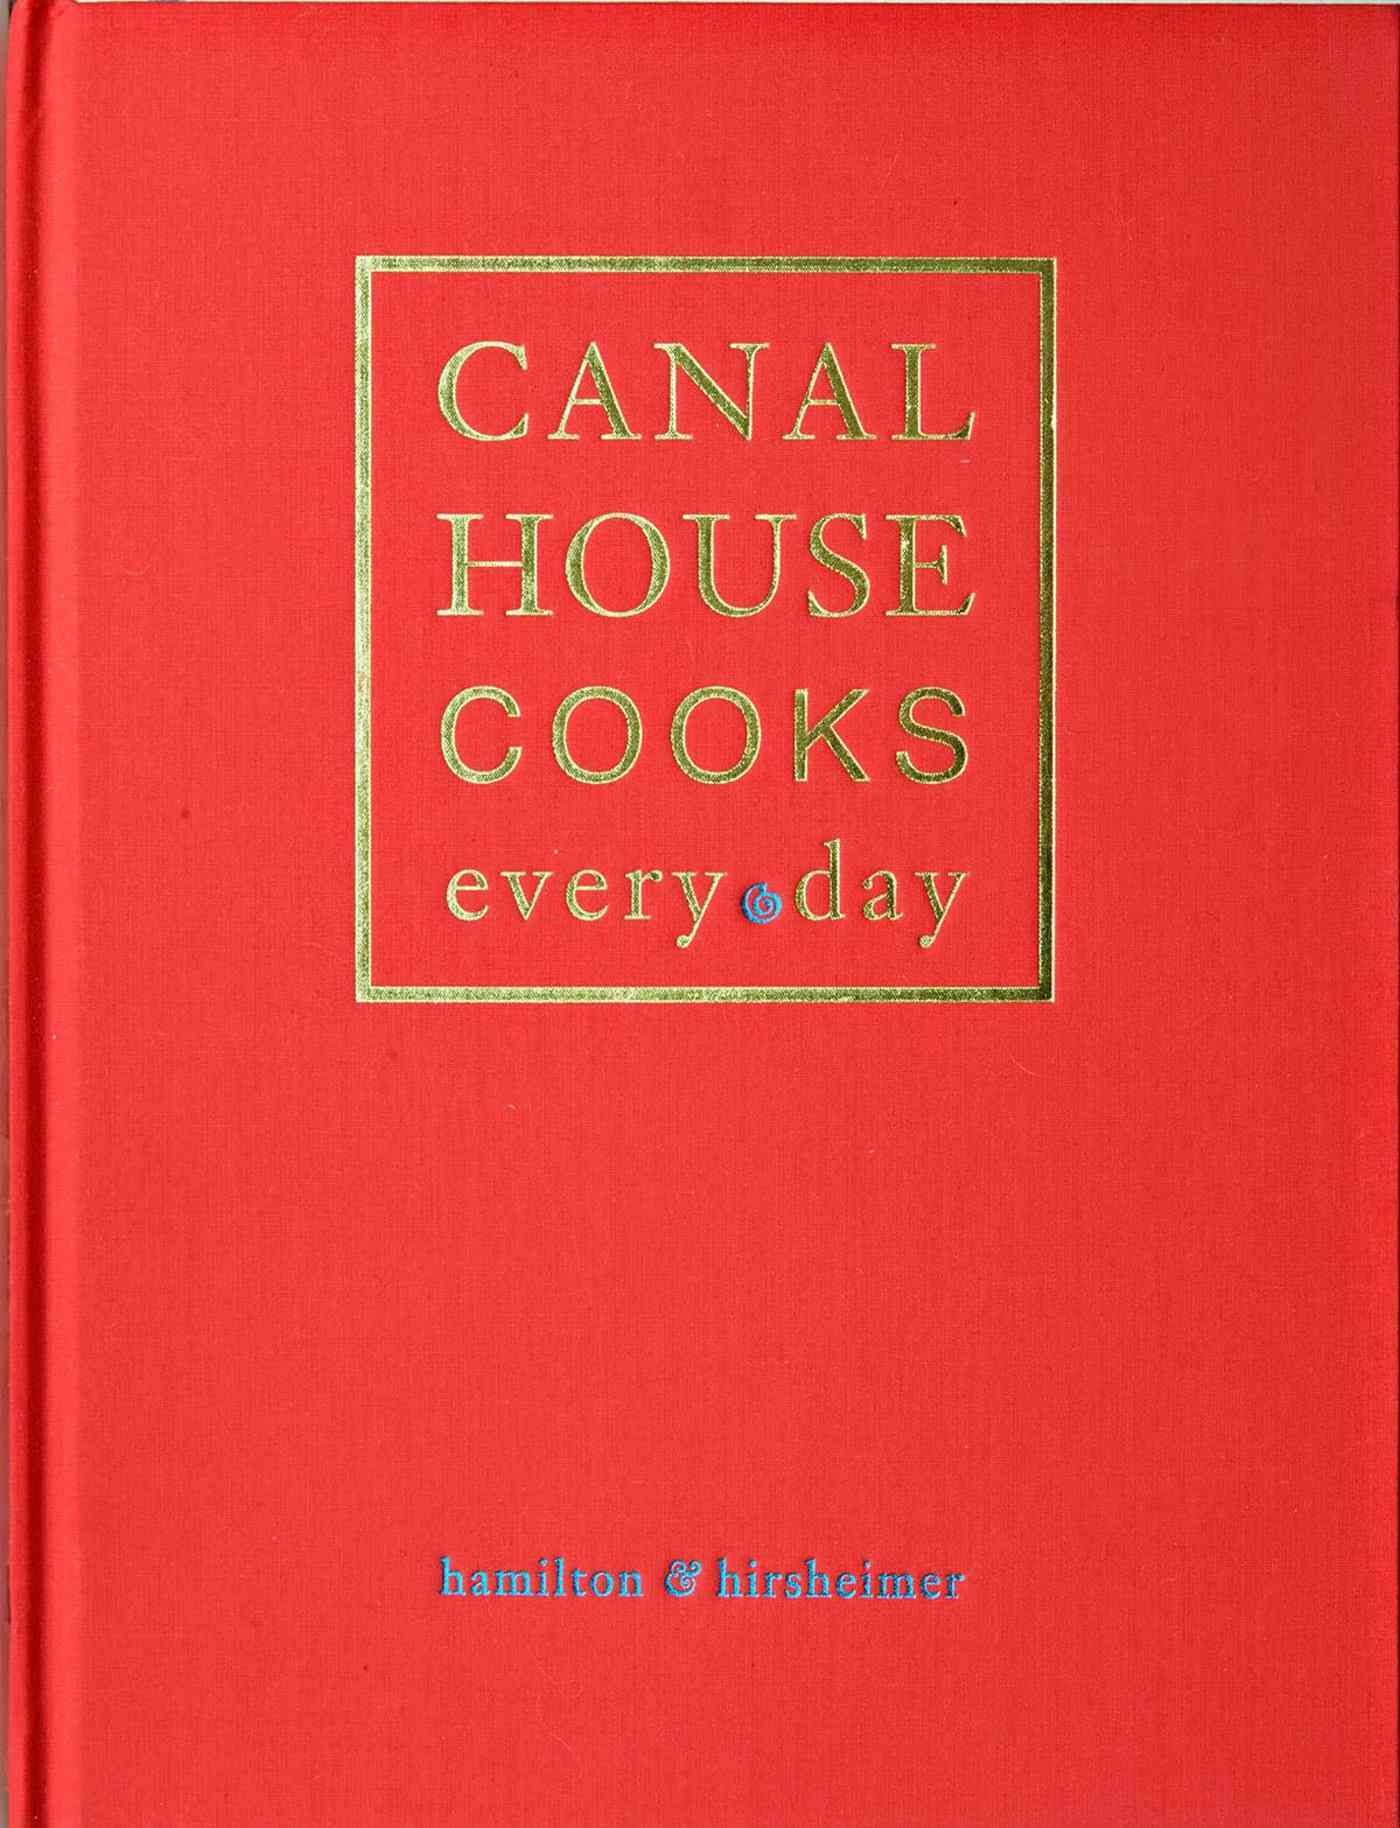 Canal House Cooks Every Day (Hardcover)